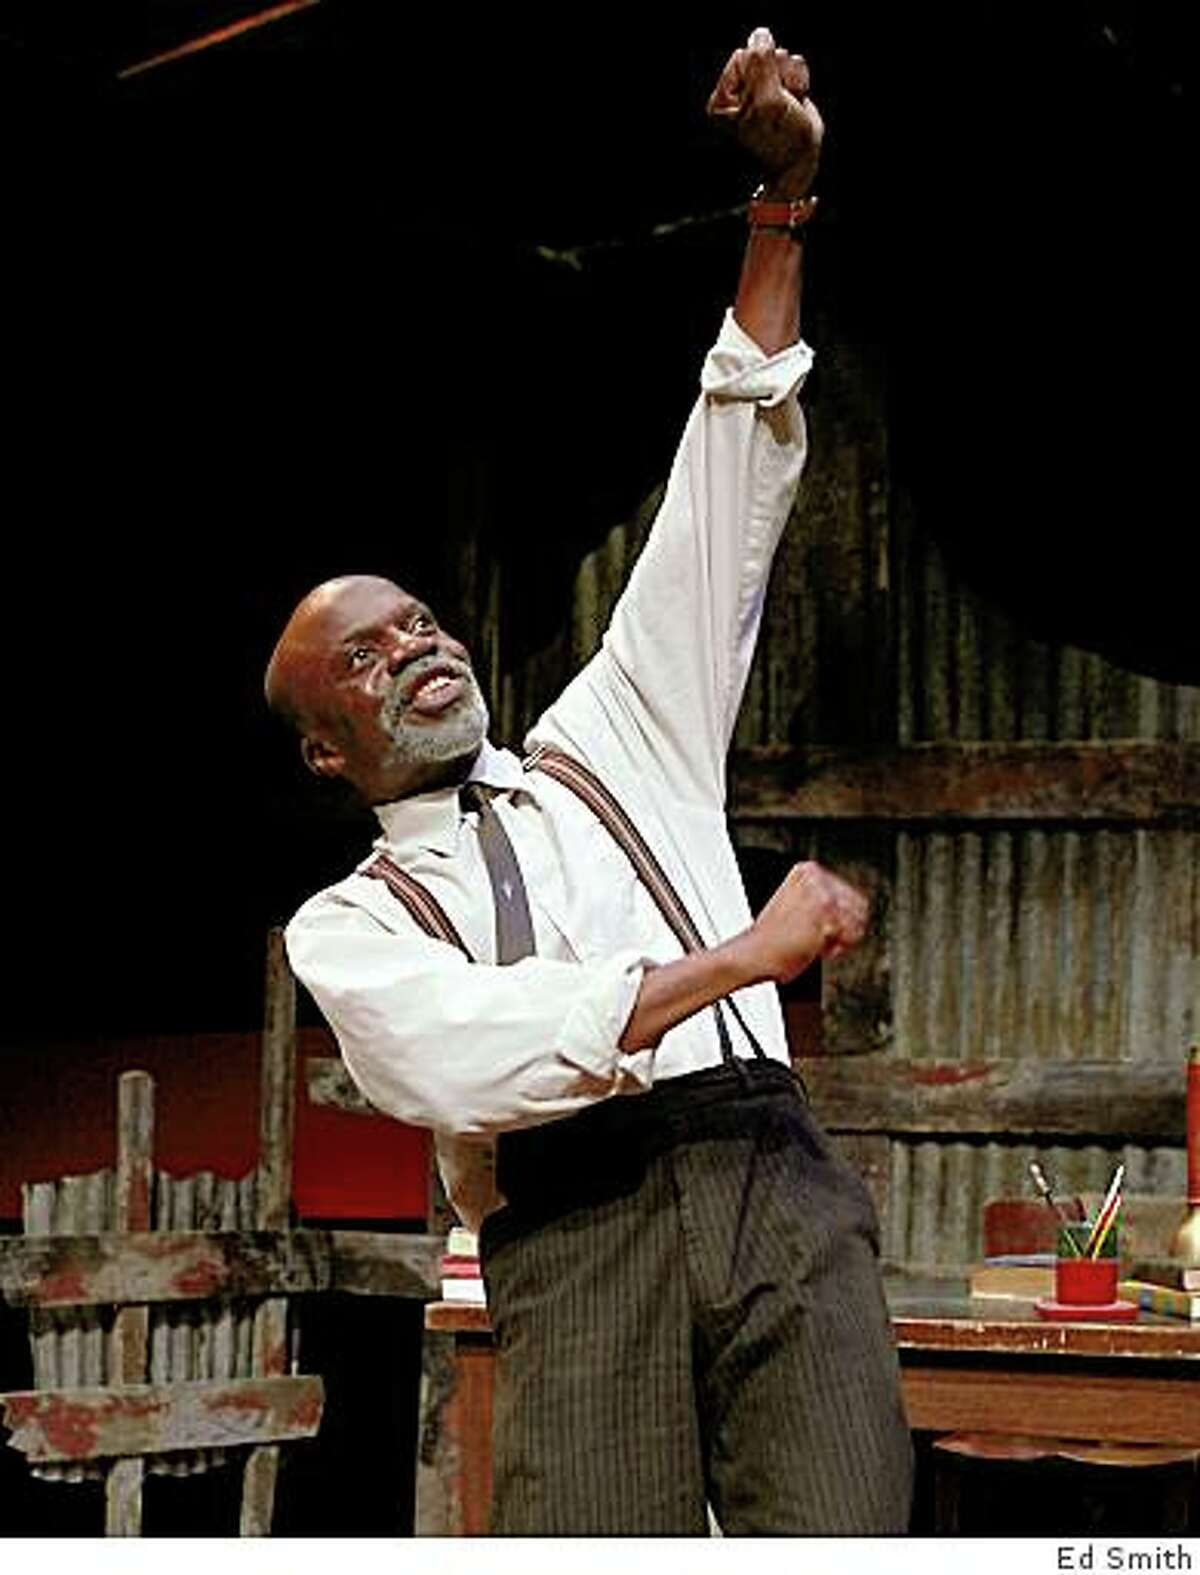 L. Peter Callender as the idealistic teacher Mr. M trying to battle South African apartheid in Athol Fugard's